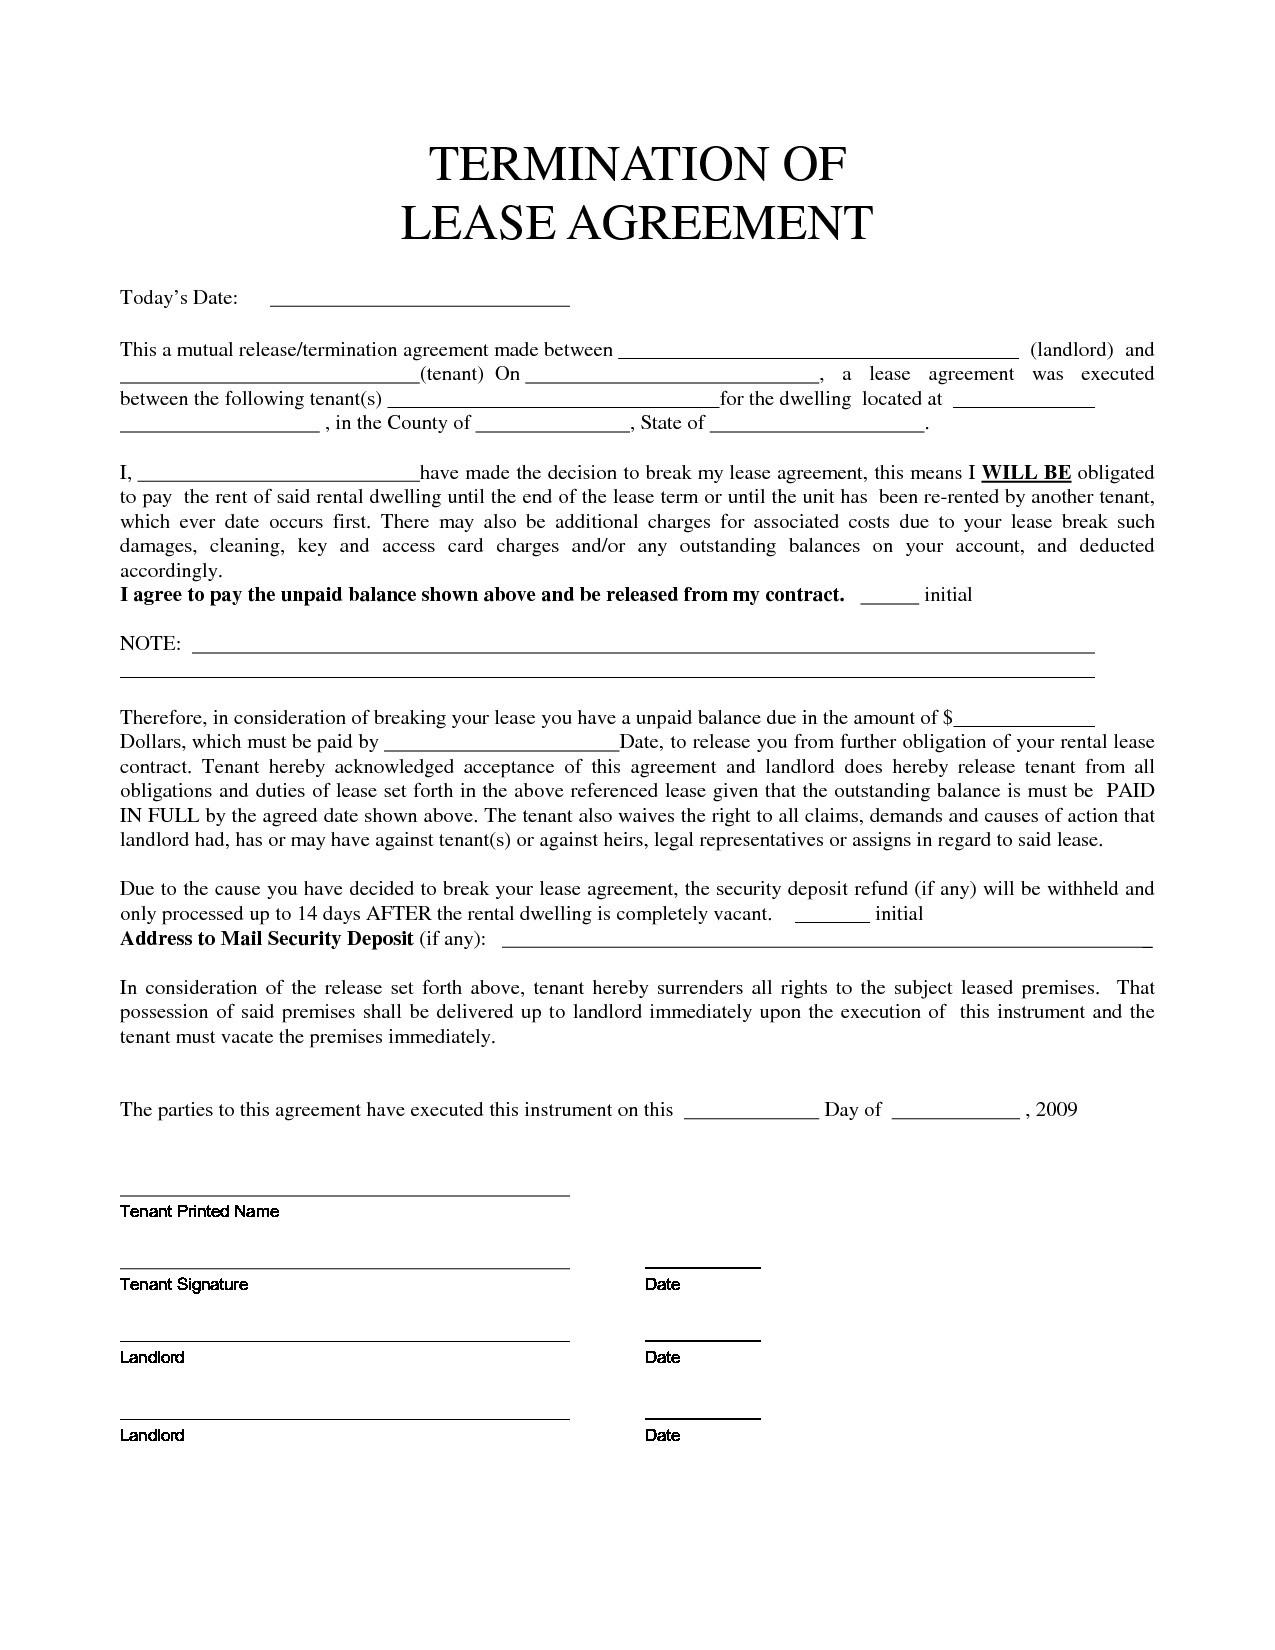 Early Lease Termination Agreement Form